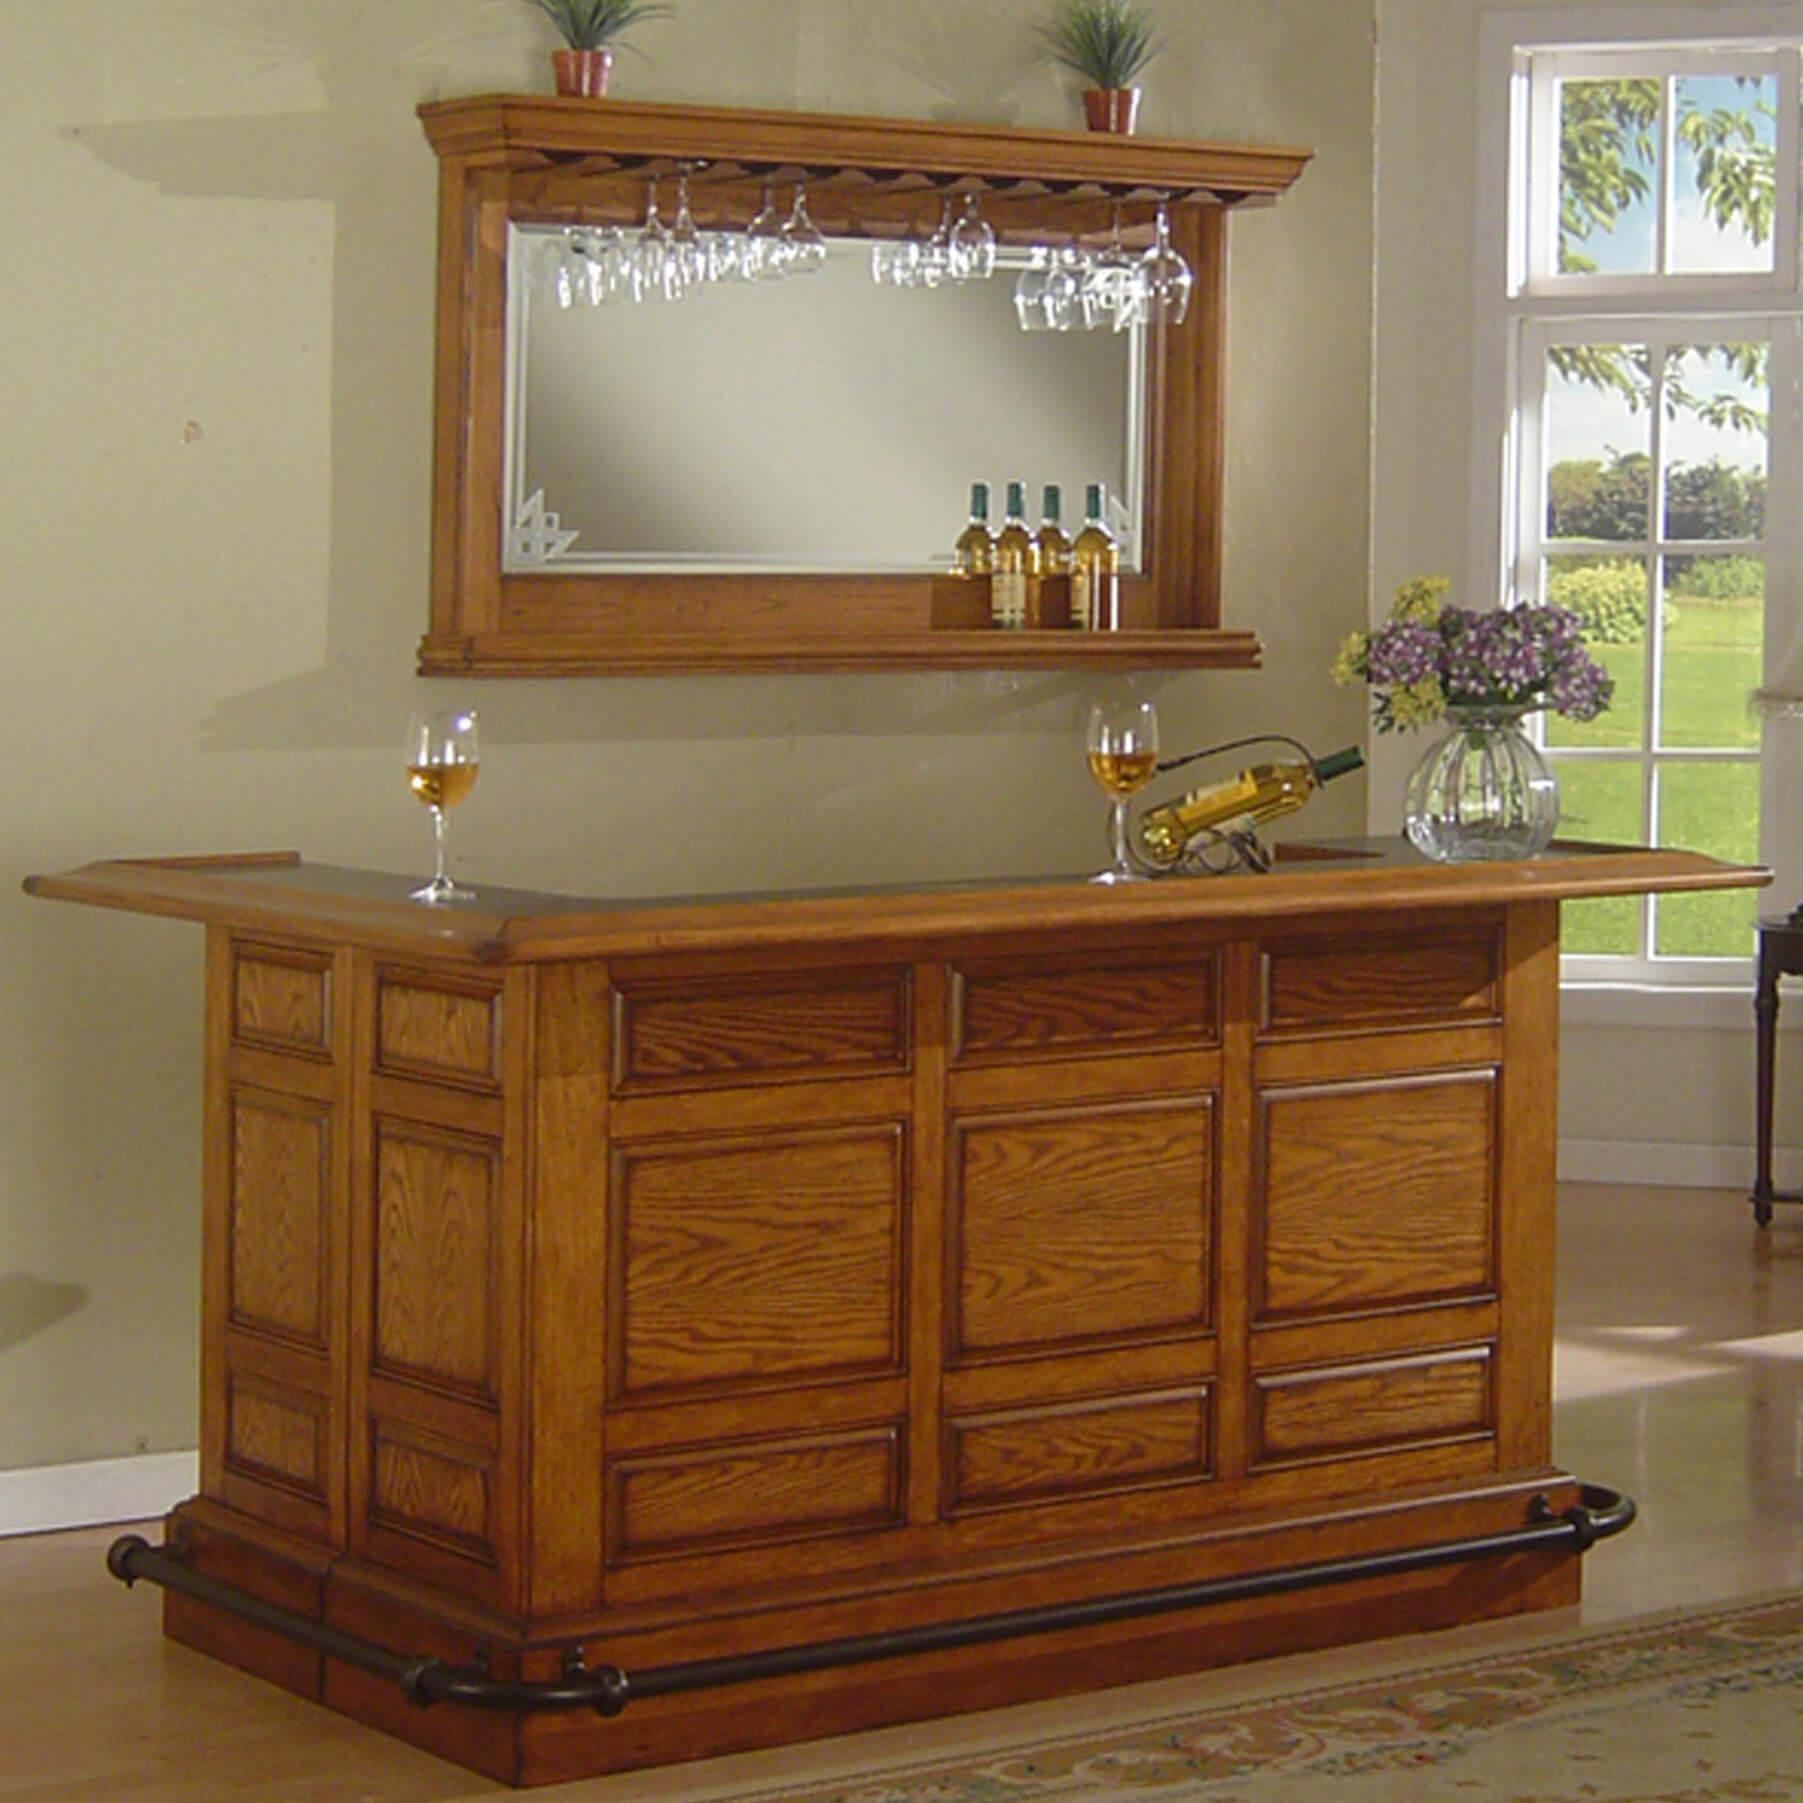 Delicieux Solid Wood Home Bar With Wrap Around Counter.